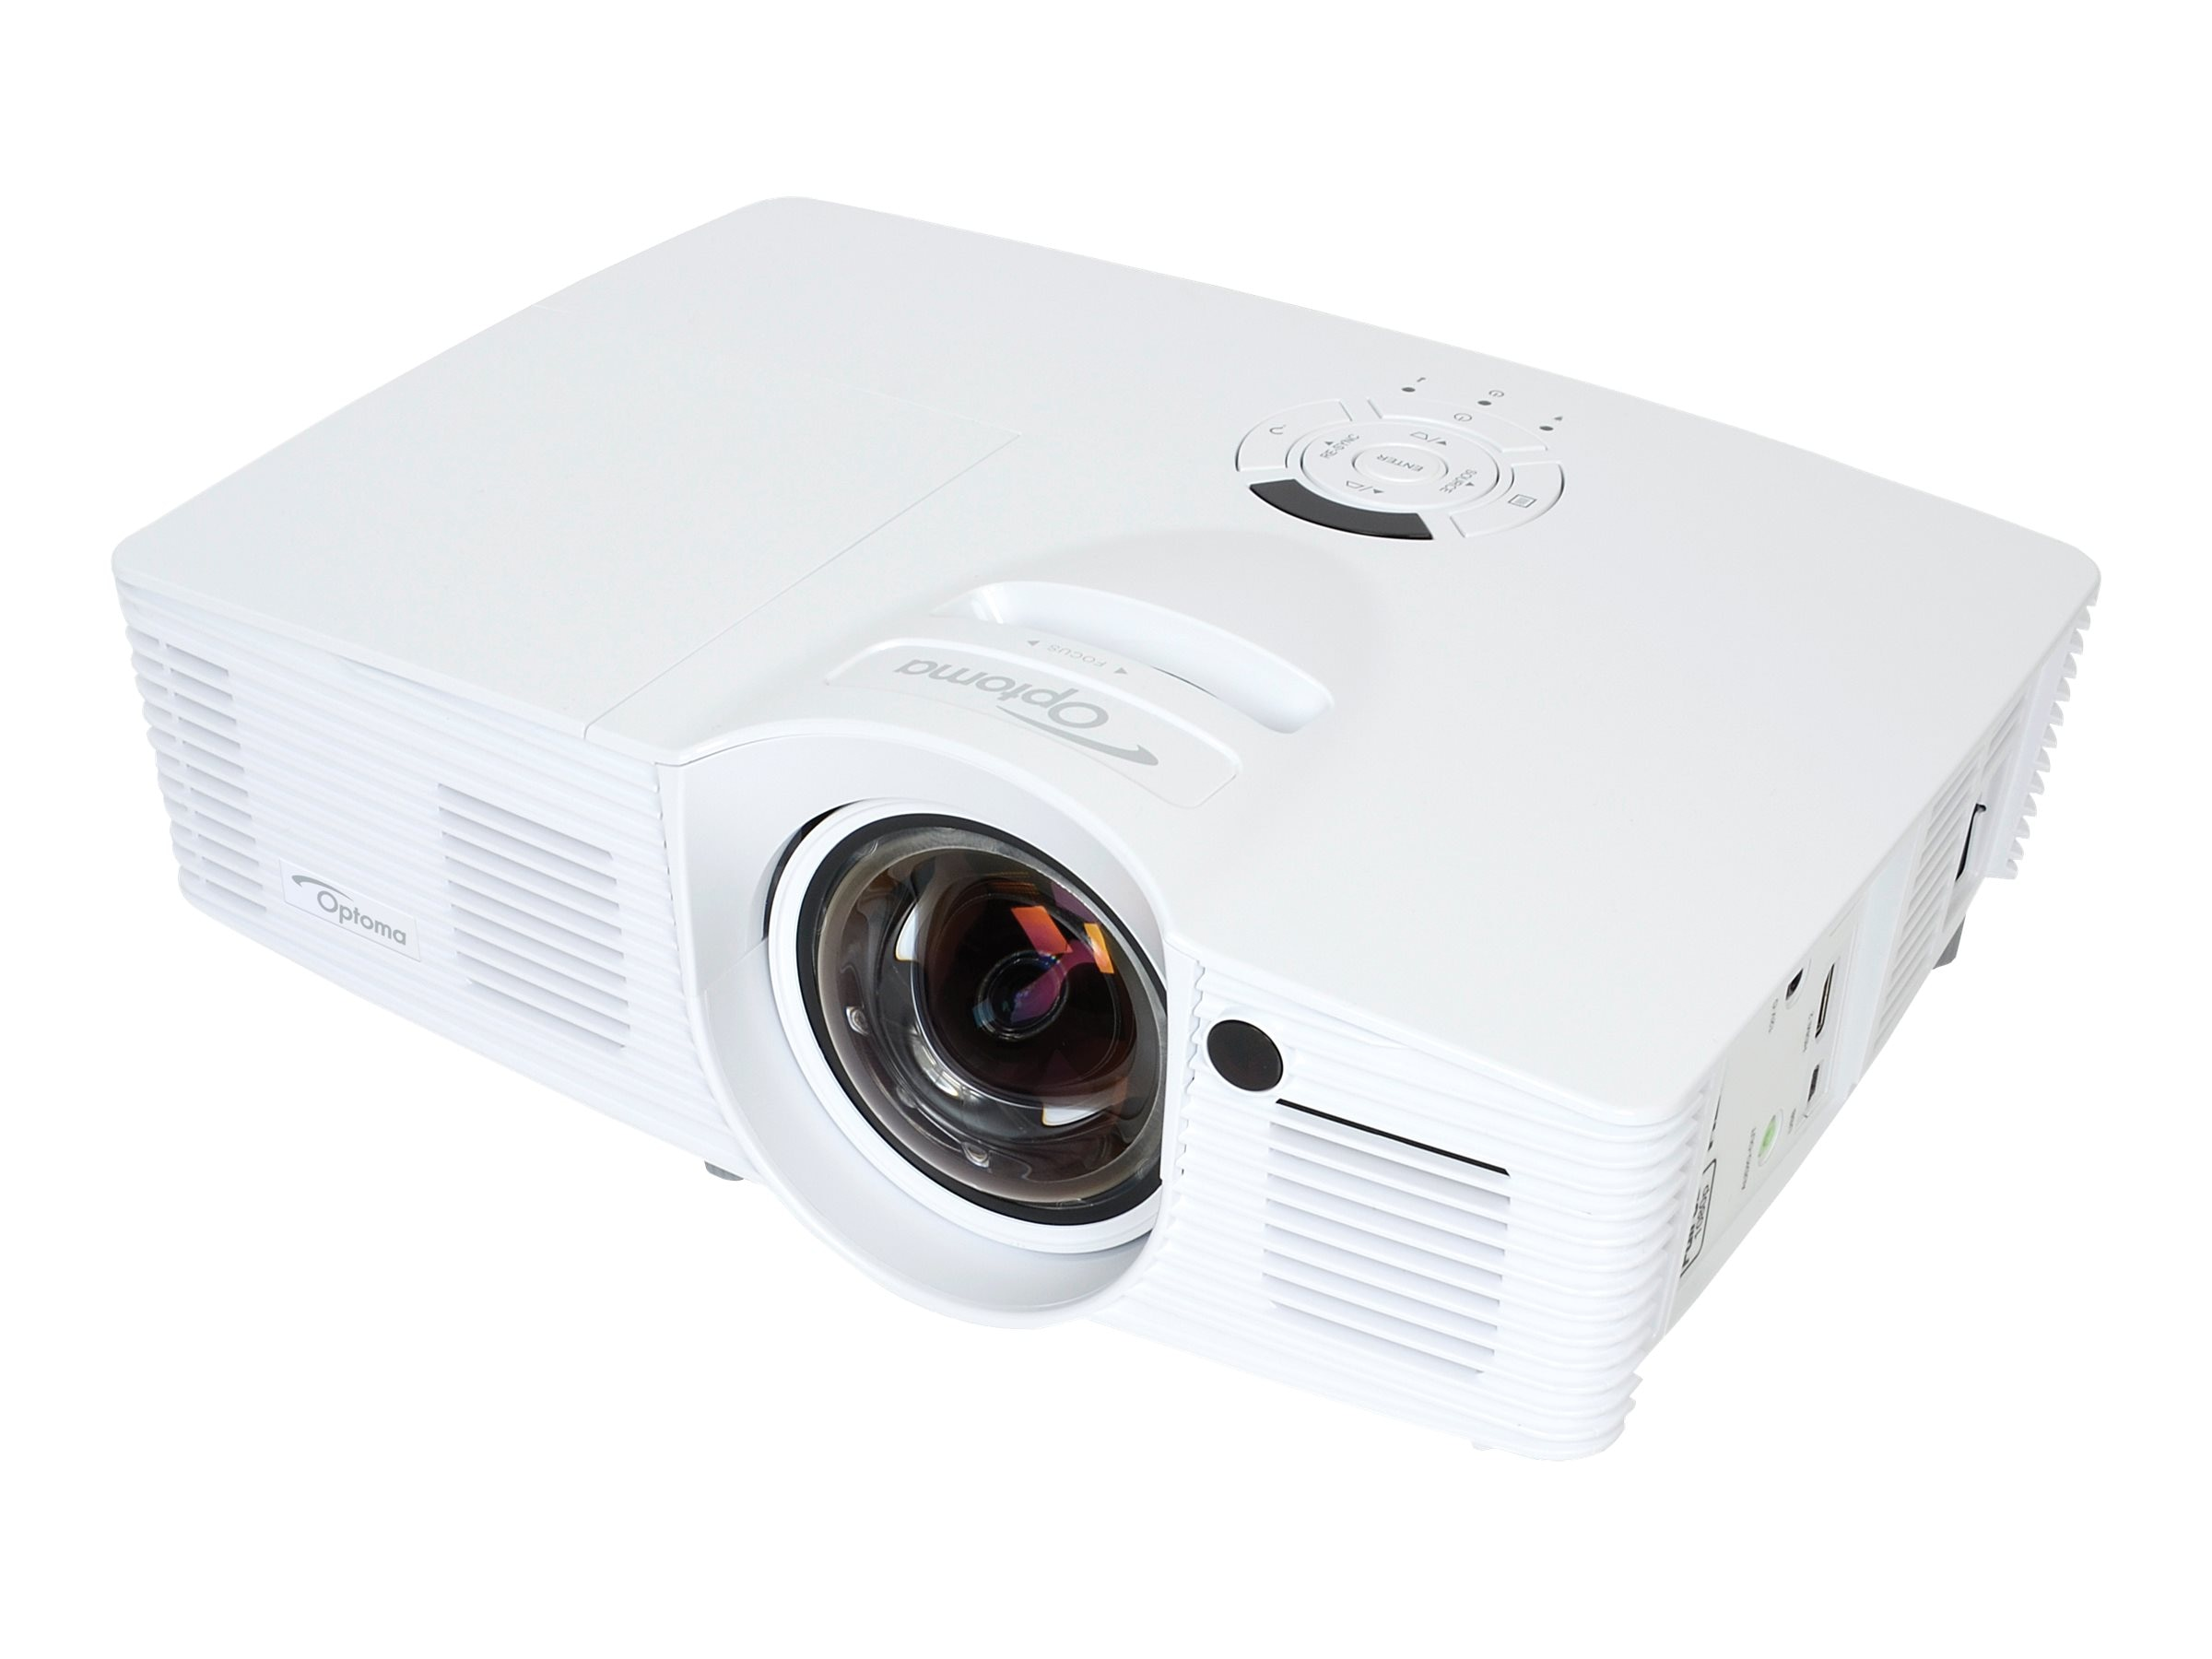 Optoma Technology GT1080 Image 1